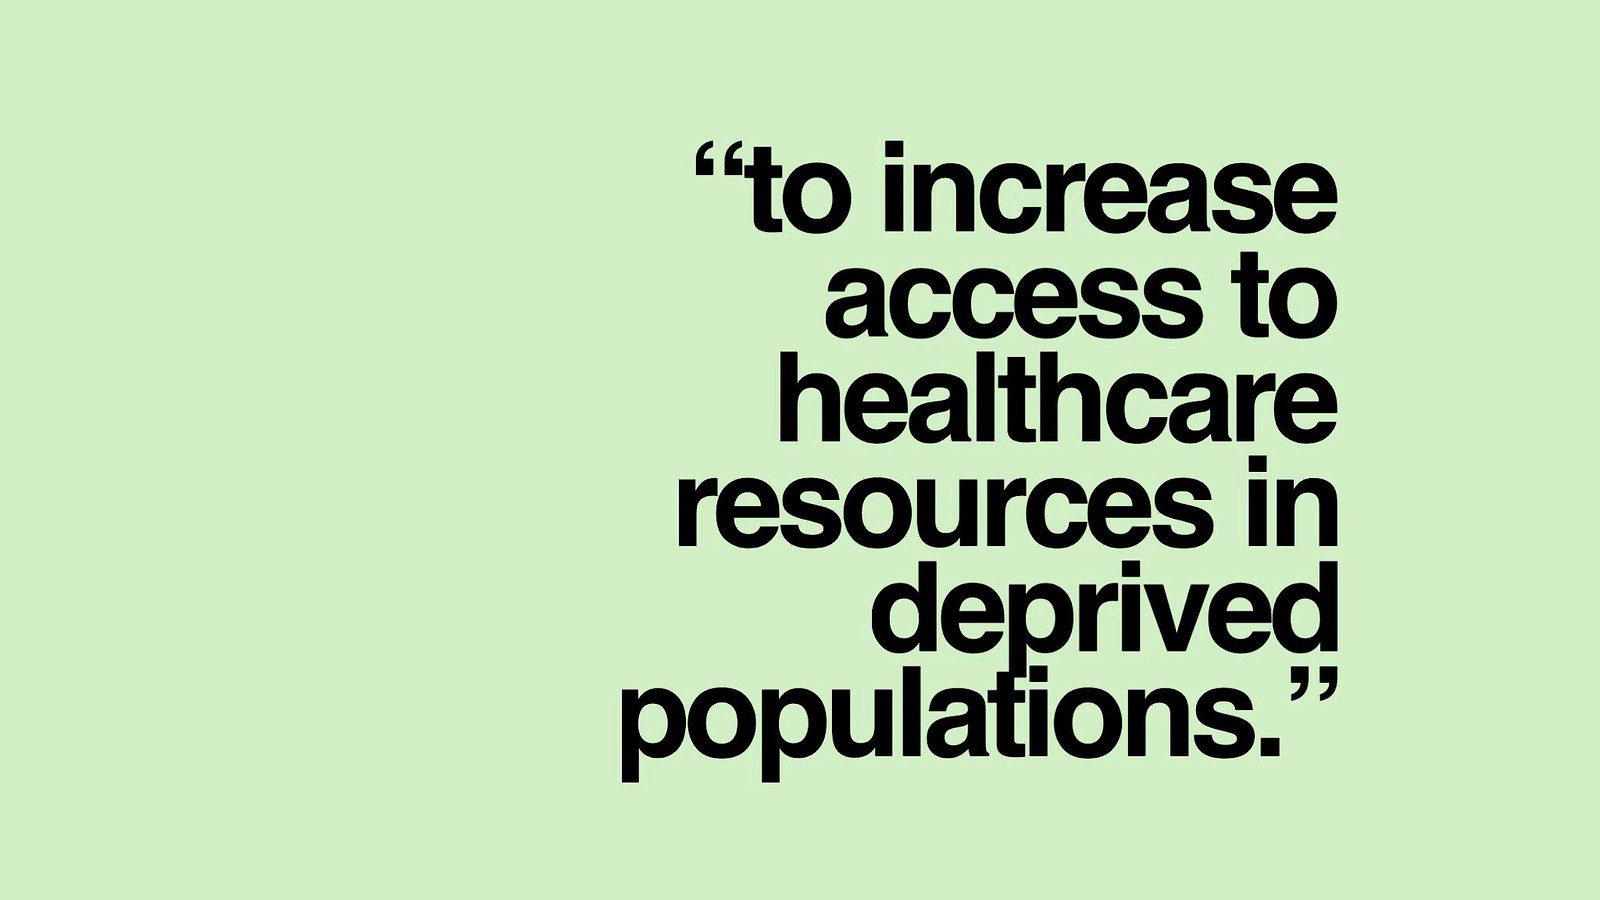 To increase access to healthcare resources in deprived populations.